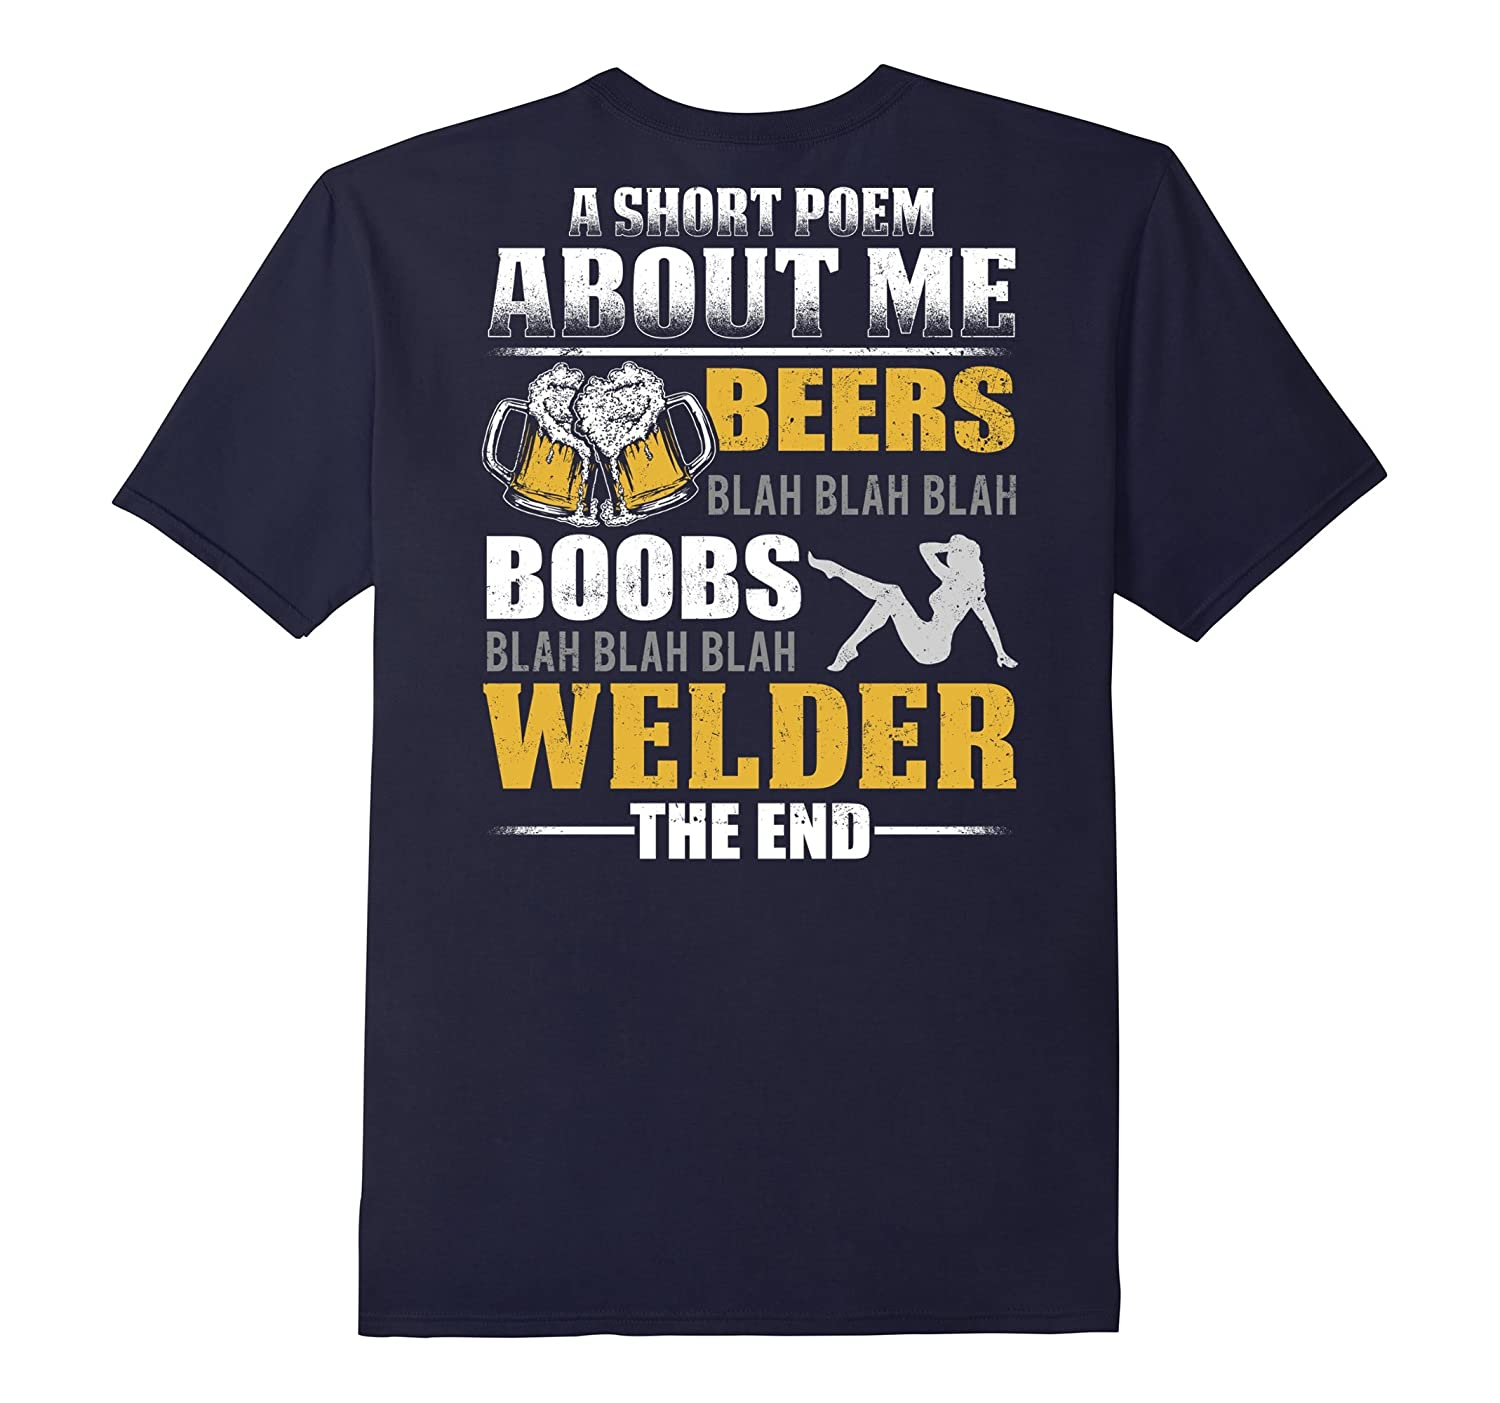 Beers Boobs Blah Blah Welder T-shirt-TJ